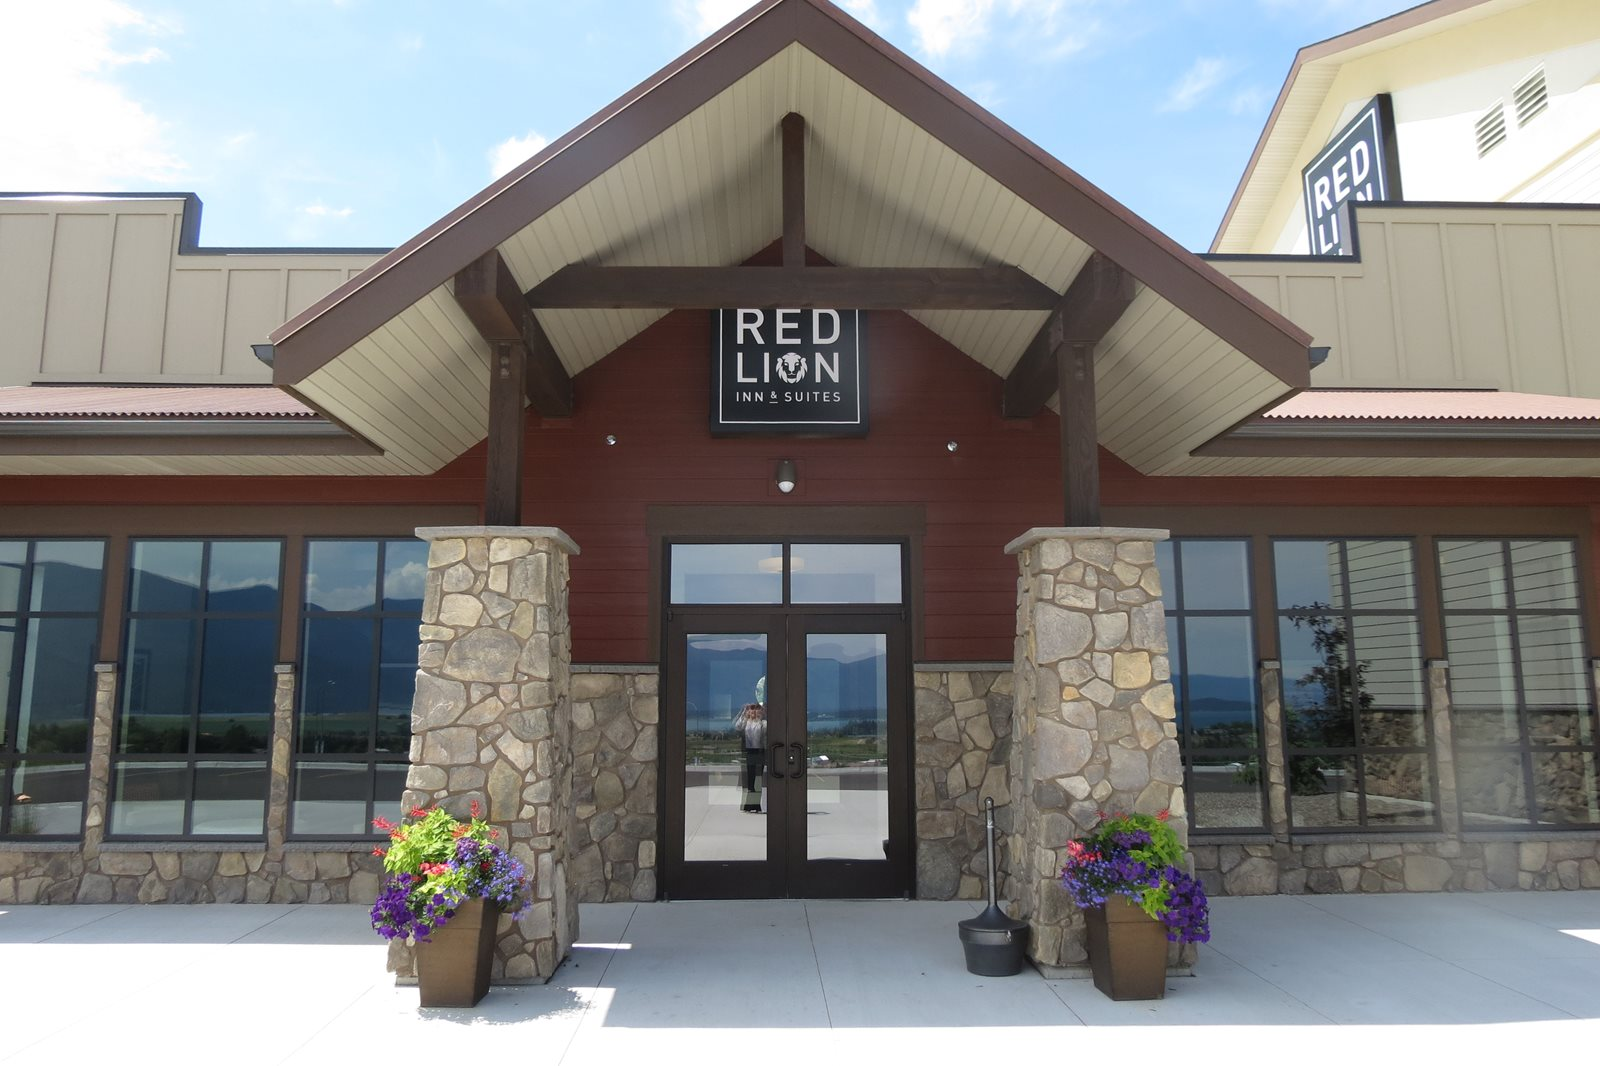 Red Lion - Polson, MT